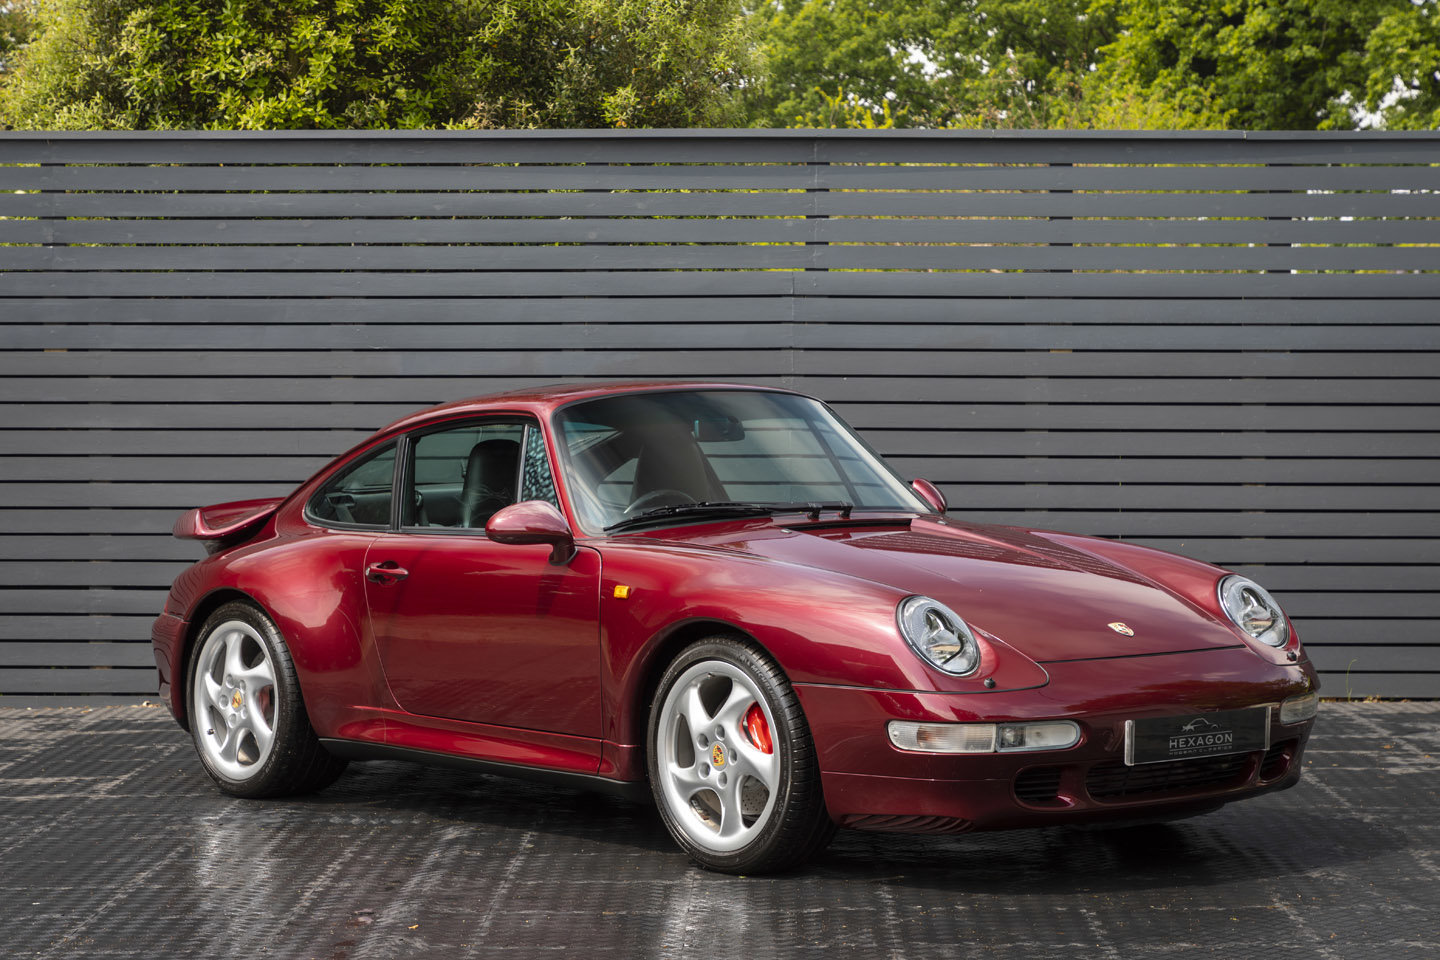 1995 PORSCHE 911 (993) TURBO ONLY UK CAR For Sale (picture 1 of 19)